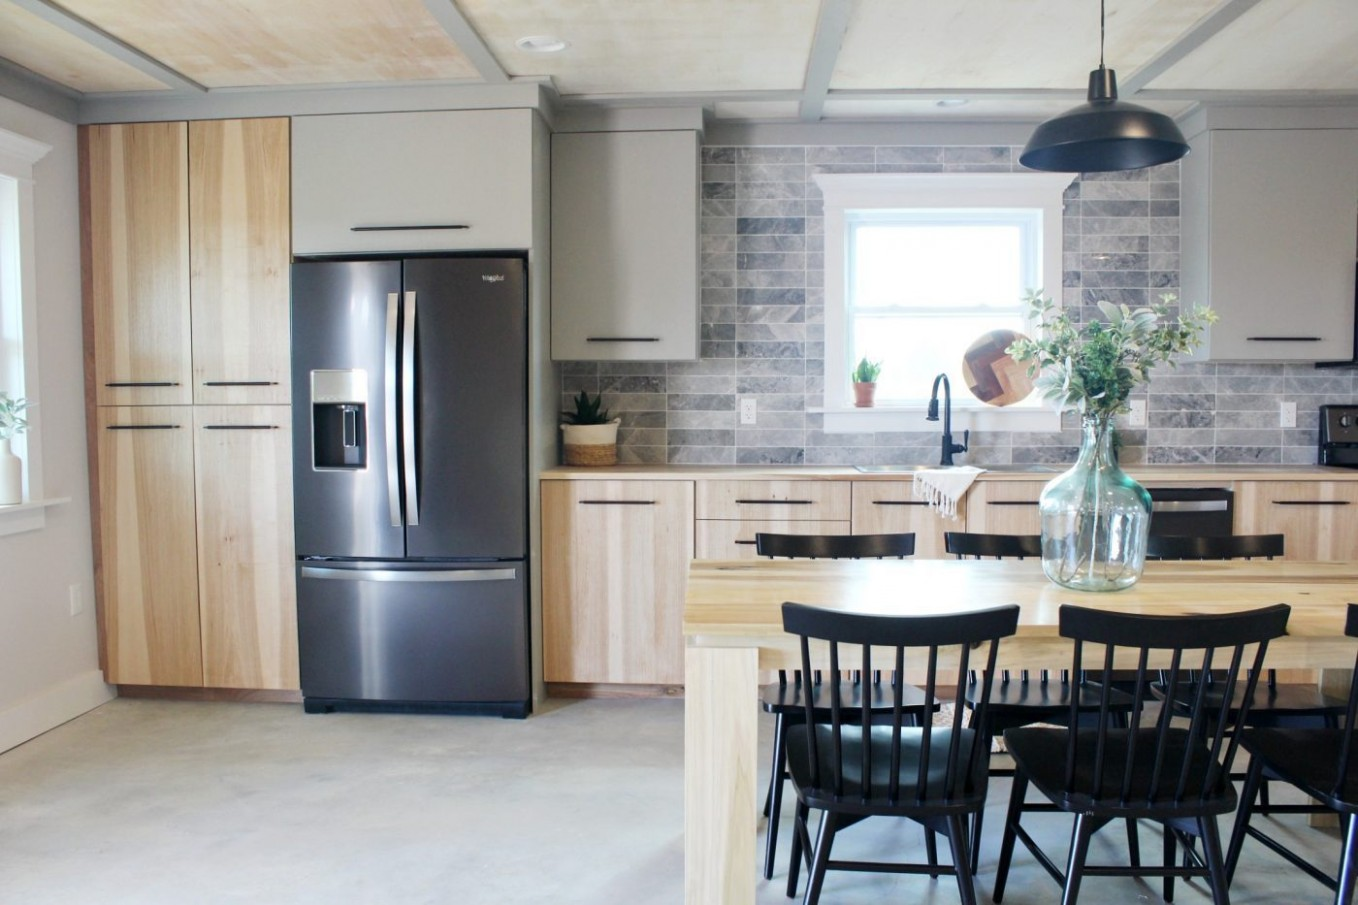 DIY Kitchen Cabinets--Made From Only Plywood! - 24 Kitchen Cabinet Base Box Only Natural Wood